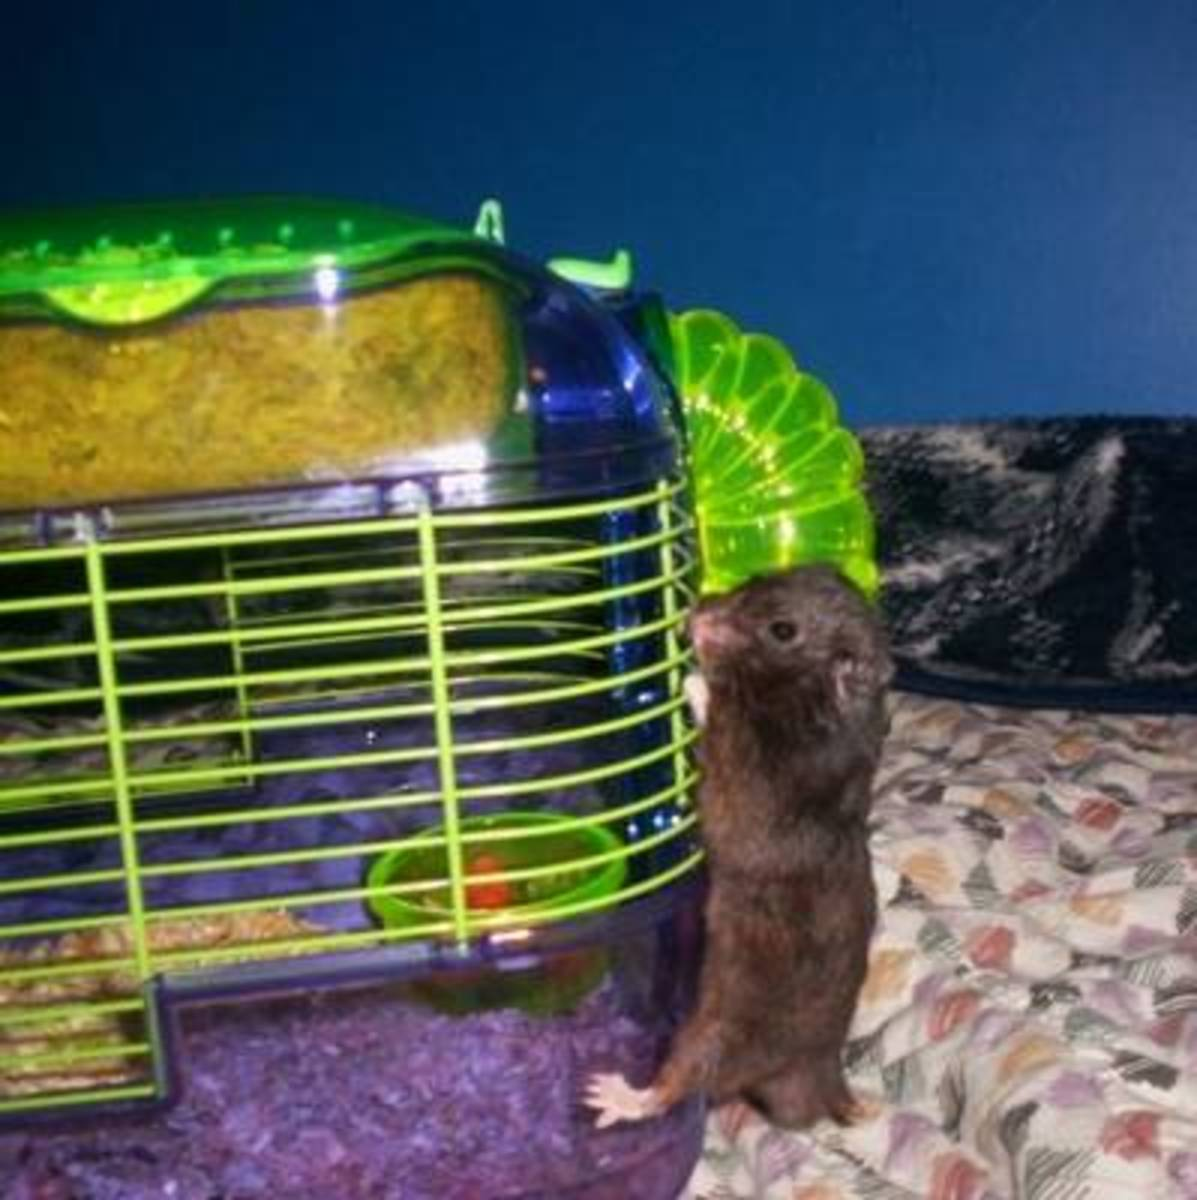 Hamsters Are As Afraid Of You As You May Be Of Them